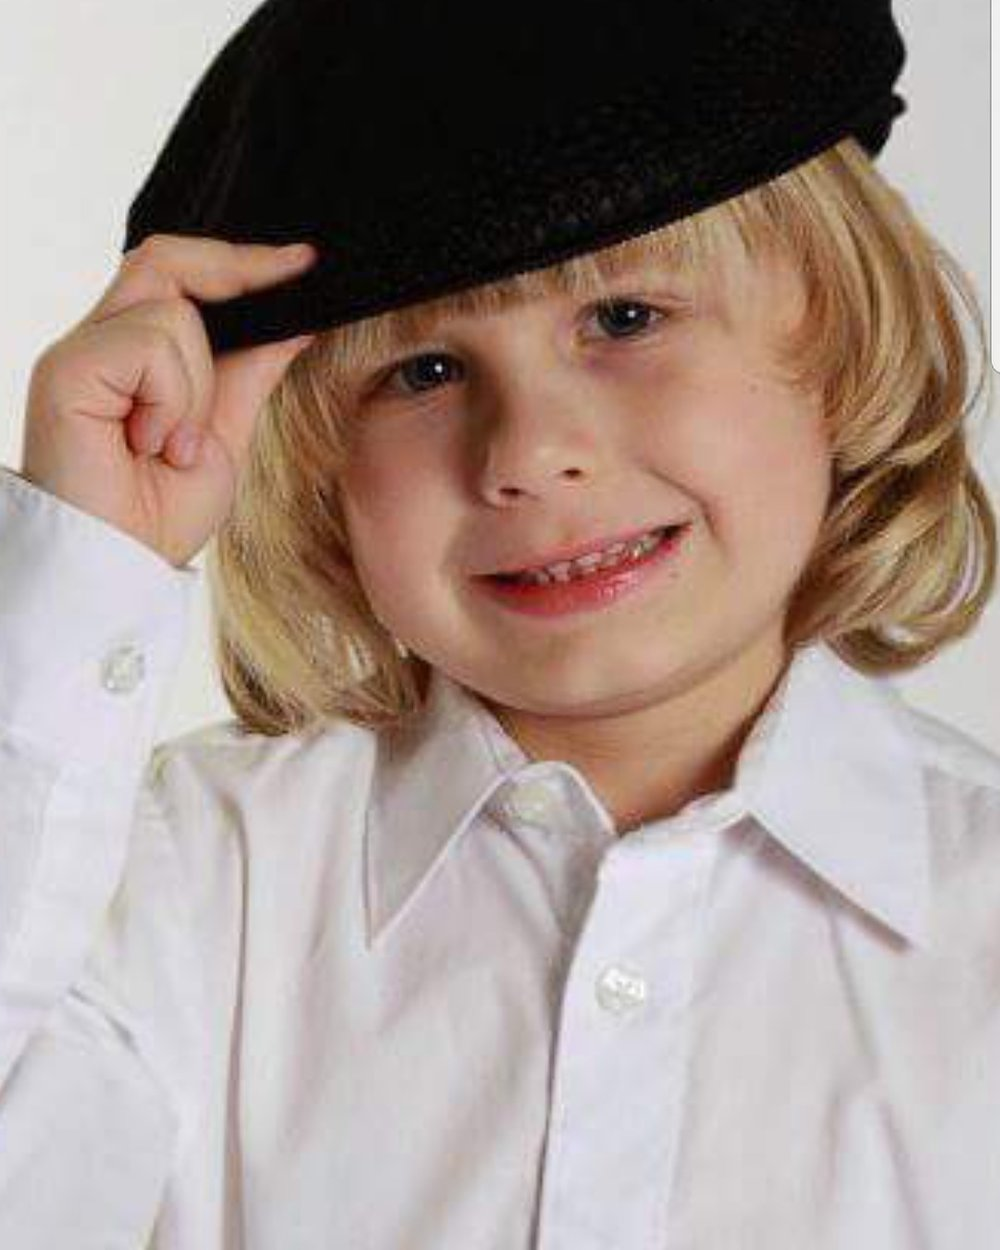 Drew Richard  tricia_johnston@yahoo.com  @Trishrichard3357  Country  United States  State / Region  North Carolina  Model  ABOUT  My name is Drew, and I am a 5-year-old boy. I have been to IMTA LA 2018 and participated in 12 categories and one four metals out in La in January. The that I won was in Modeling runway which was high fashion and Jean's competition. I have done many fashion shows and are currently taking acting and modelling. I am only 5 and love modelling, sports and karate. I have studied martial arts for two years now. My Drew is to be an actor one day.  Our readers would love to get to know you more Drew. Tell us about yourself, what is unique about you, your brand or the services you offer?  Modelling clothing. I love to dress up!  Drew, what are your passion and aspiration in life? How did you start as a Model?  Everyone thought I should be a model. Everyone always saying how cute I was so my mom enrolled me in classes  Who is your inspiration in life Drew? How do you stay inspired as Model?  With every fashion show, I do I love it even more.  We all make mistakes Drew; we wish we could take back. What was the mistake you made in the past that you wish you can take back?  I am 5 years old. I have a lot to learn  Drew, How do you describe yourself regarding working with clients?  I always have a smile on my face, and I love people. They love putting me in for jobs because I listen and always stay determined to do it right  Please tell us, Drew , how do you prioritise work, social life, friends, and family?  I love my family, and they stand behind me in everything that I admire and love to do. I have many friends, and without my family and friends I would be lost  Drew, please give us an example of a time when you were able to successfully persuade someone to see things your way at work.  With being only 5, I have not many complaints while I work.  Drew please tell us about your proudest professional accomplishment as a Model.  When I was chosen to walk in the Official Imta L A 2018 fashion show out in California. I was the happiest five years old ever that day!!  Drew, please give us an example of a time you were able to be creative with your work. What was exciting or difficult about it?  Competition against other models on stage and winning metals in the top 10 percent  What advice would you give to the people who want to be successful as a Model?*  *  Fulfil your passion no matter what age.Never give up!  Photo Credits:  Ray Raisedana